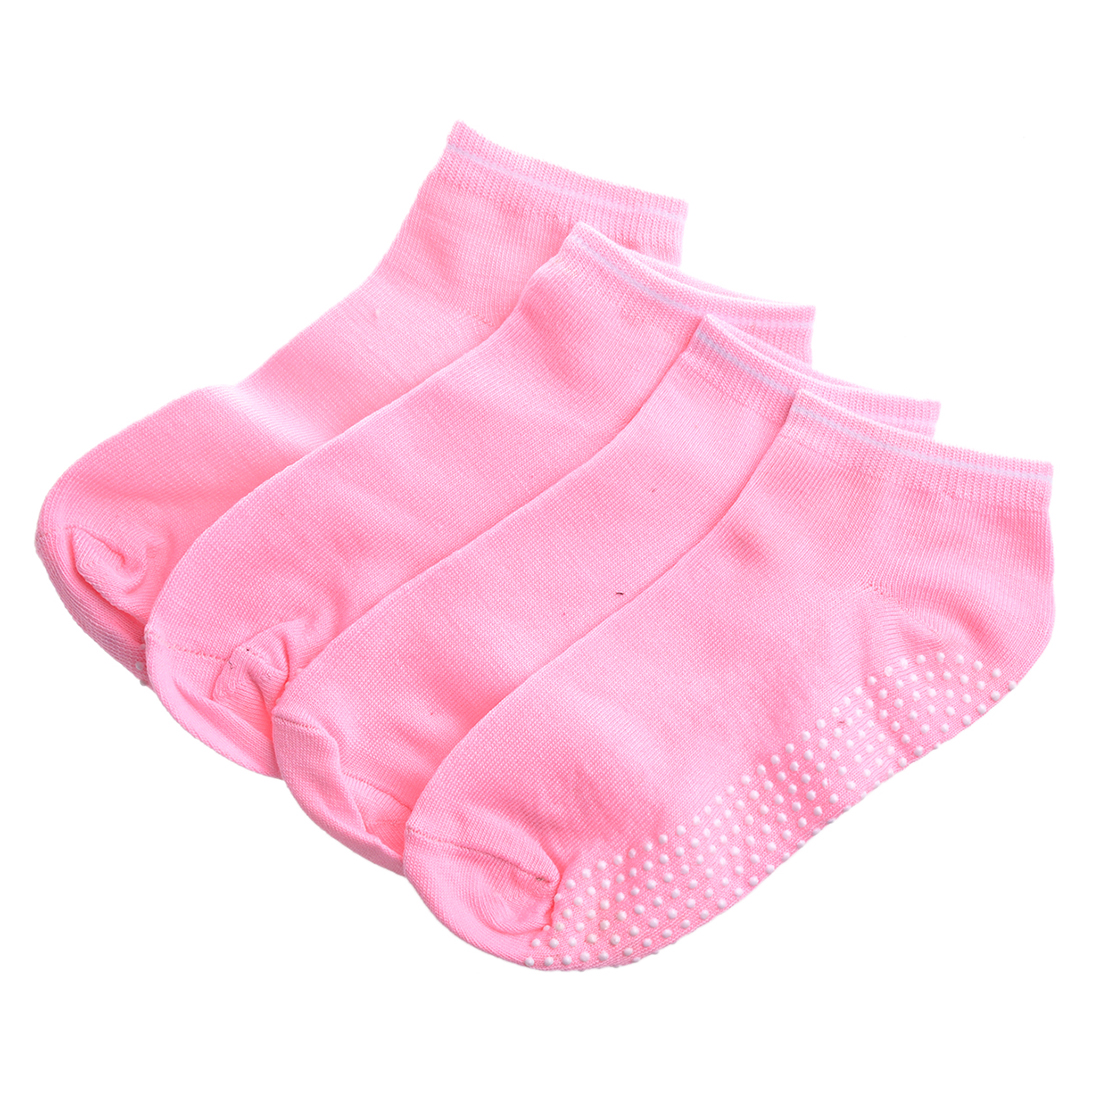 2 pairs new arrival Socks with non-slip massage Granules for women - Pink